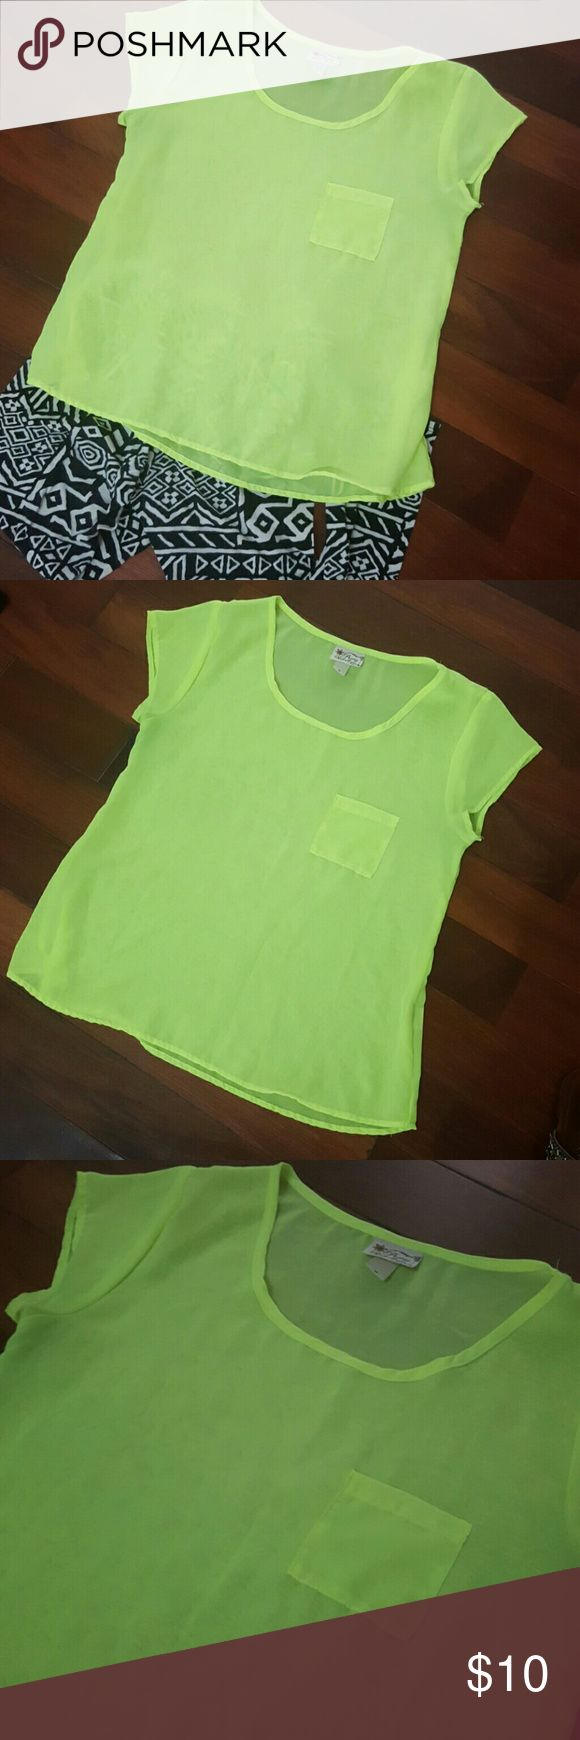 Neon Yellow Top NonStretchy 100% Polyester Tops